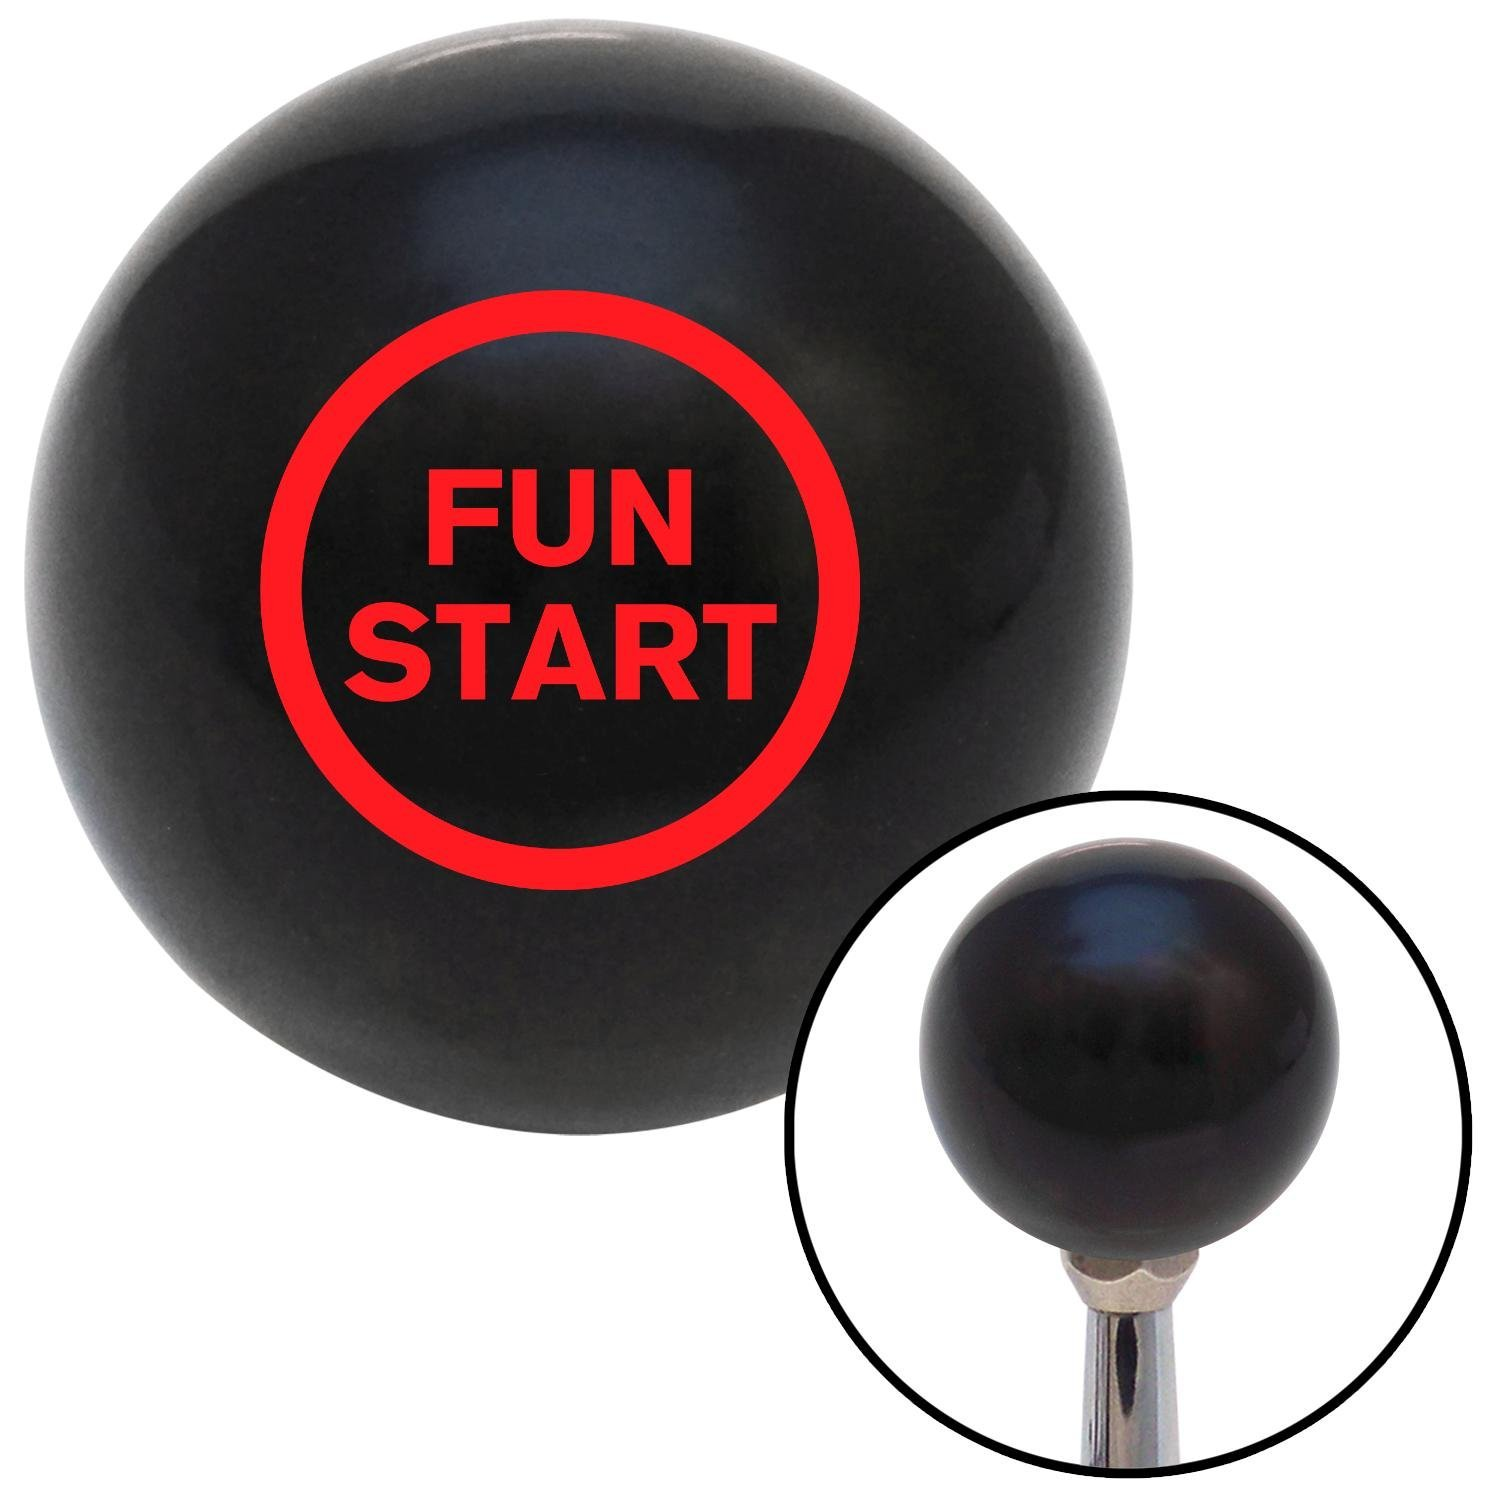 American Shifter 110440 Black Shift Knob with M16 x 1.5 Insert Red Fun Start